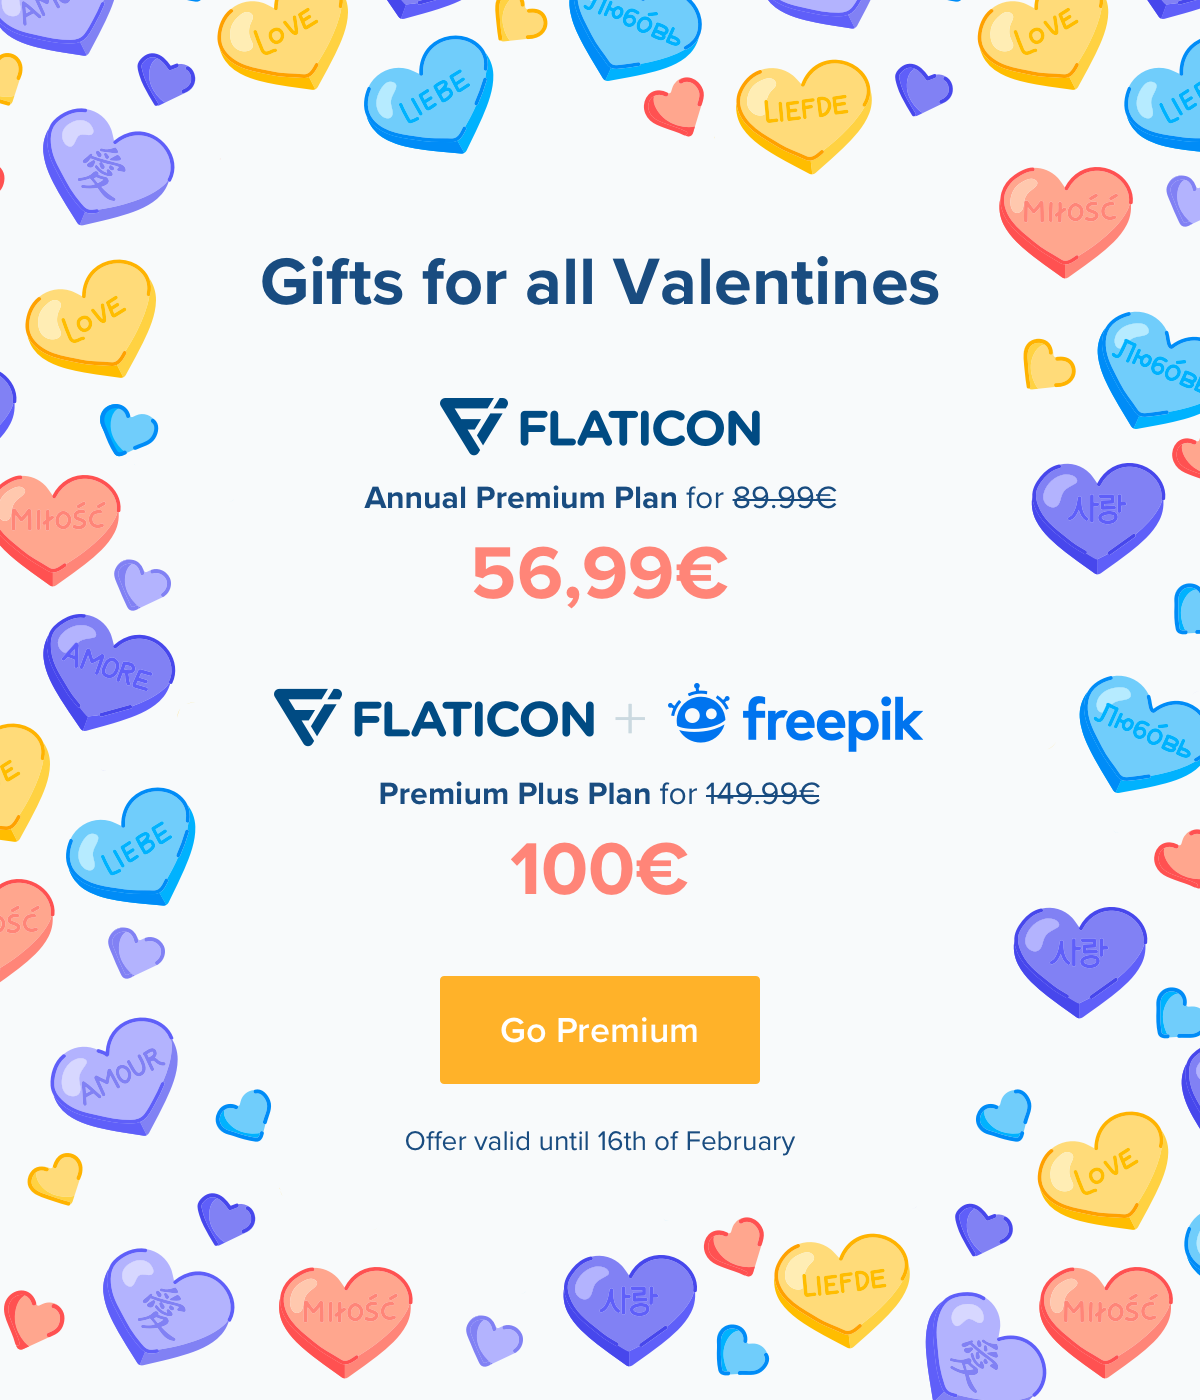 Gifts for all Valentines